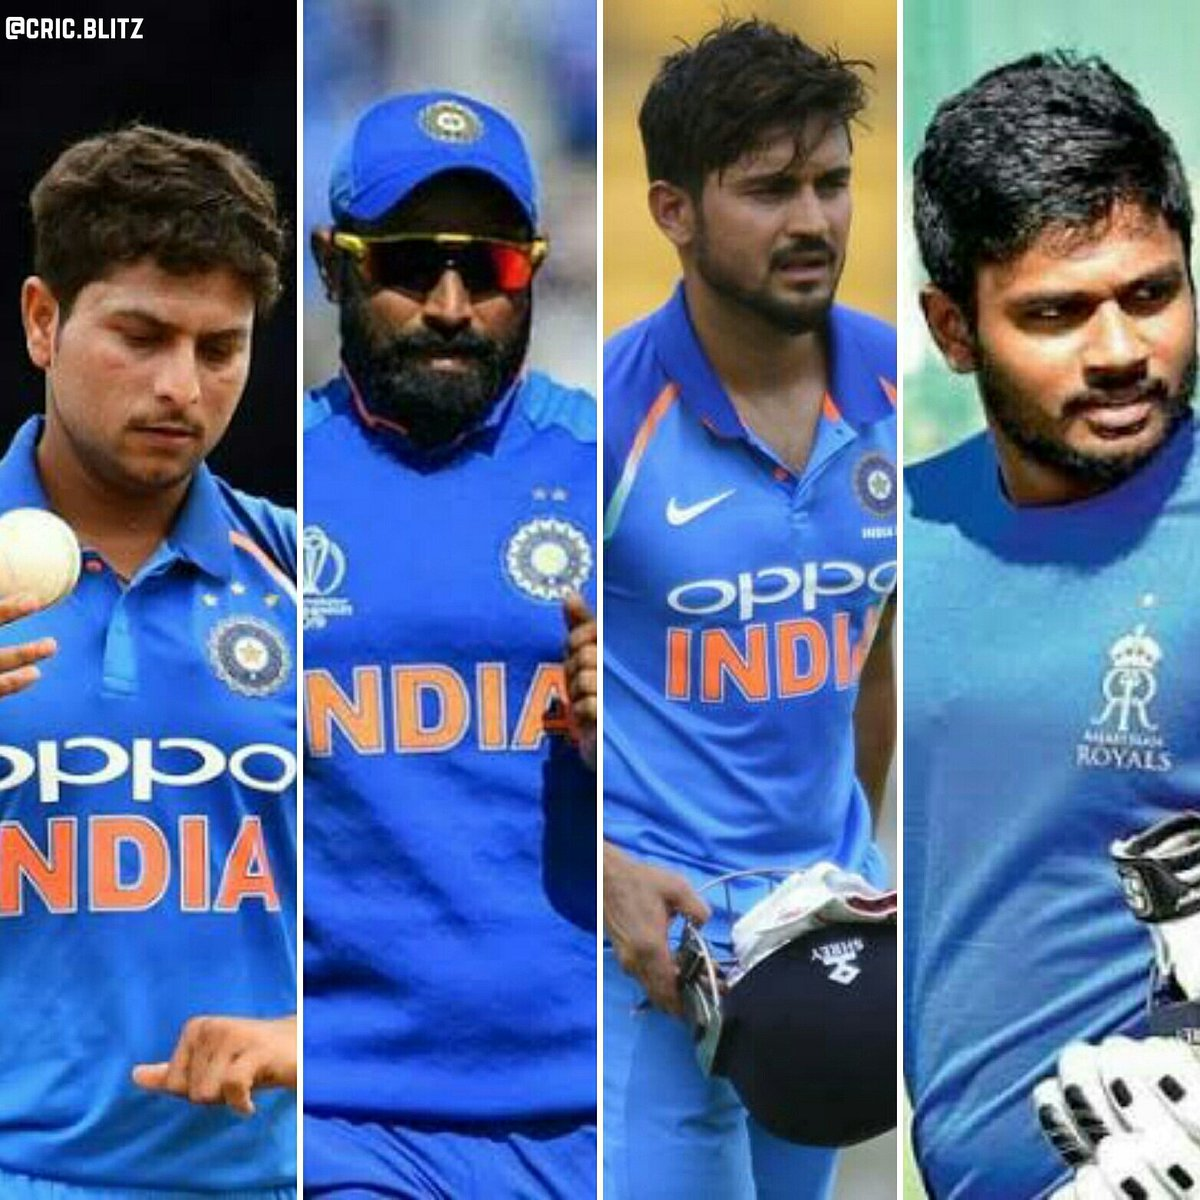 Manish Pandey, Shami, Kuldeep, Sanju Samson to miss out the first t20 against WI. K L Rahul to open alongside Rohit Sharma. Rishabh Pant in. #nz #engvsnz #ipl #ipl2020 #india #yuvraj #kohli #msd #dhoni #cricblitz #sachin #westindies #rohitsharma #rishabh #jaspritbumrah